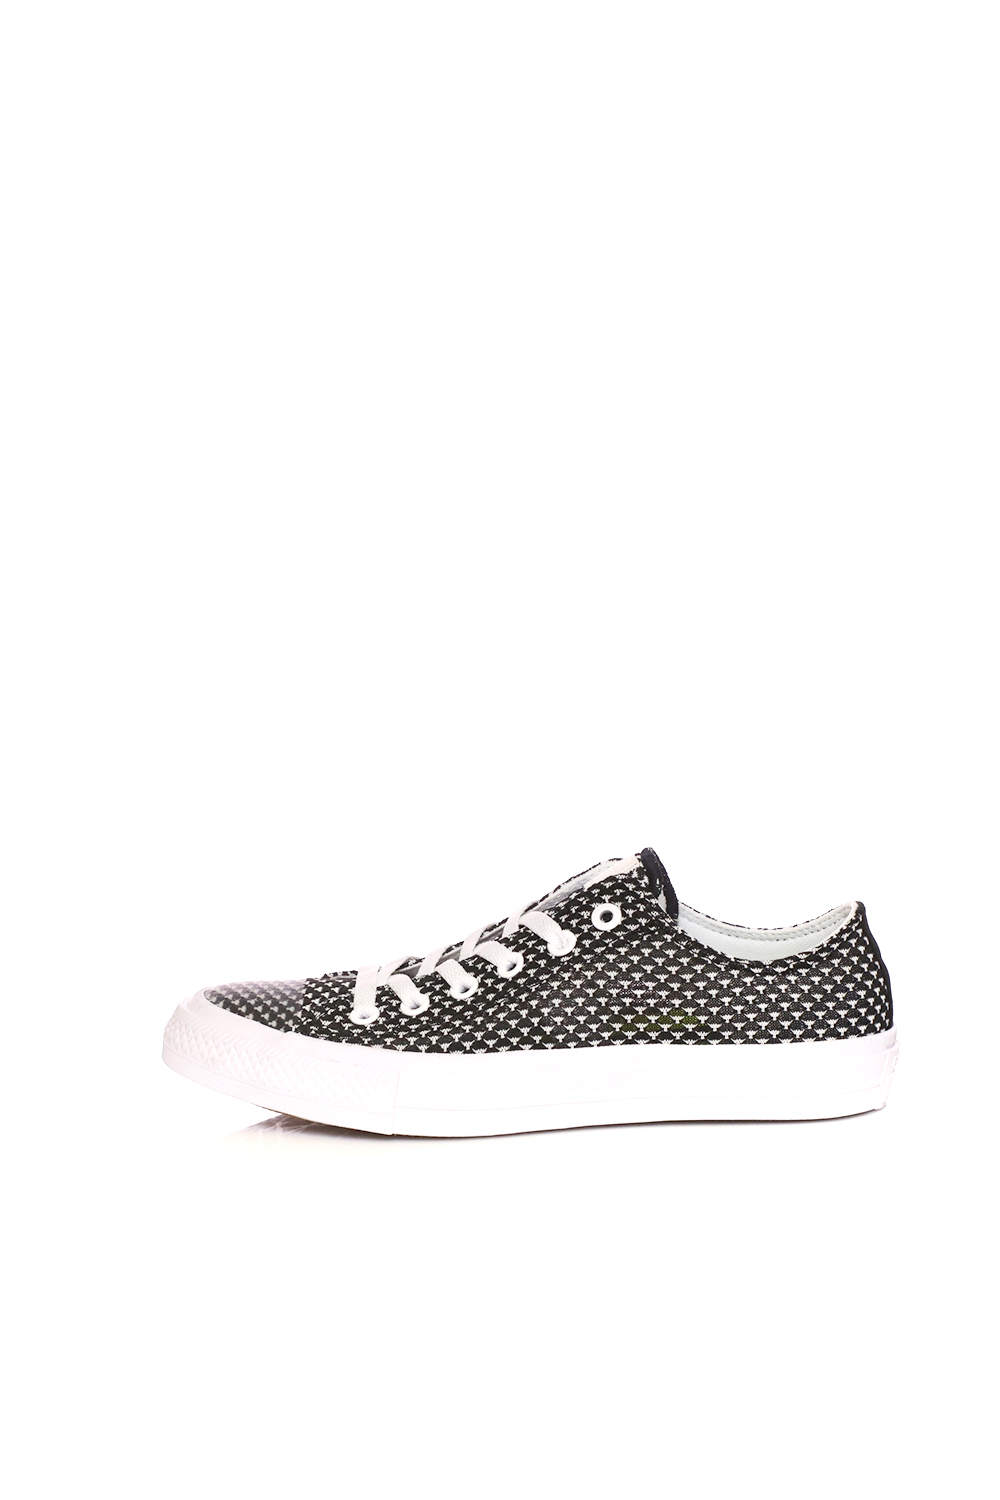 bffc801bdb1 -20% Collective Online CONVERSE – Unisex παπούτσια Chuck Taylor All Star II  Ox με μοτίβο